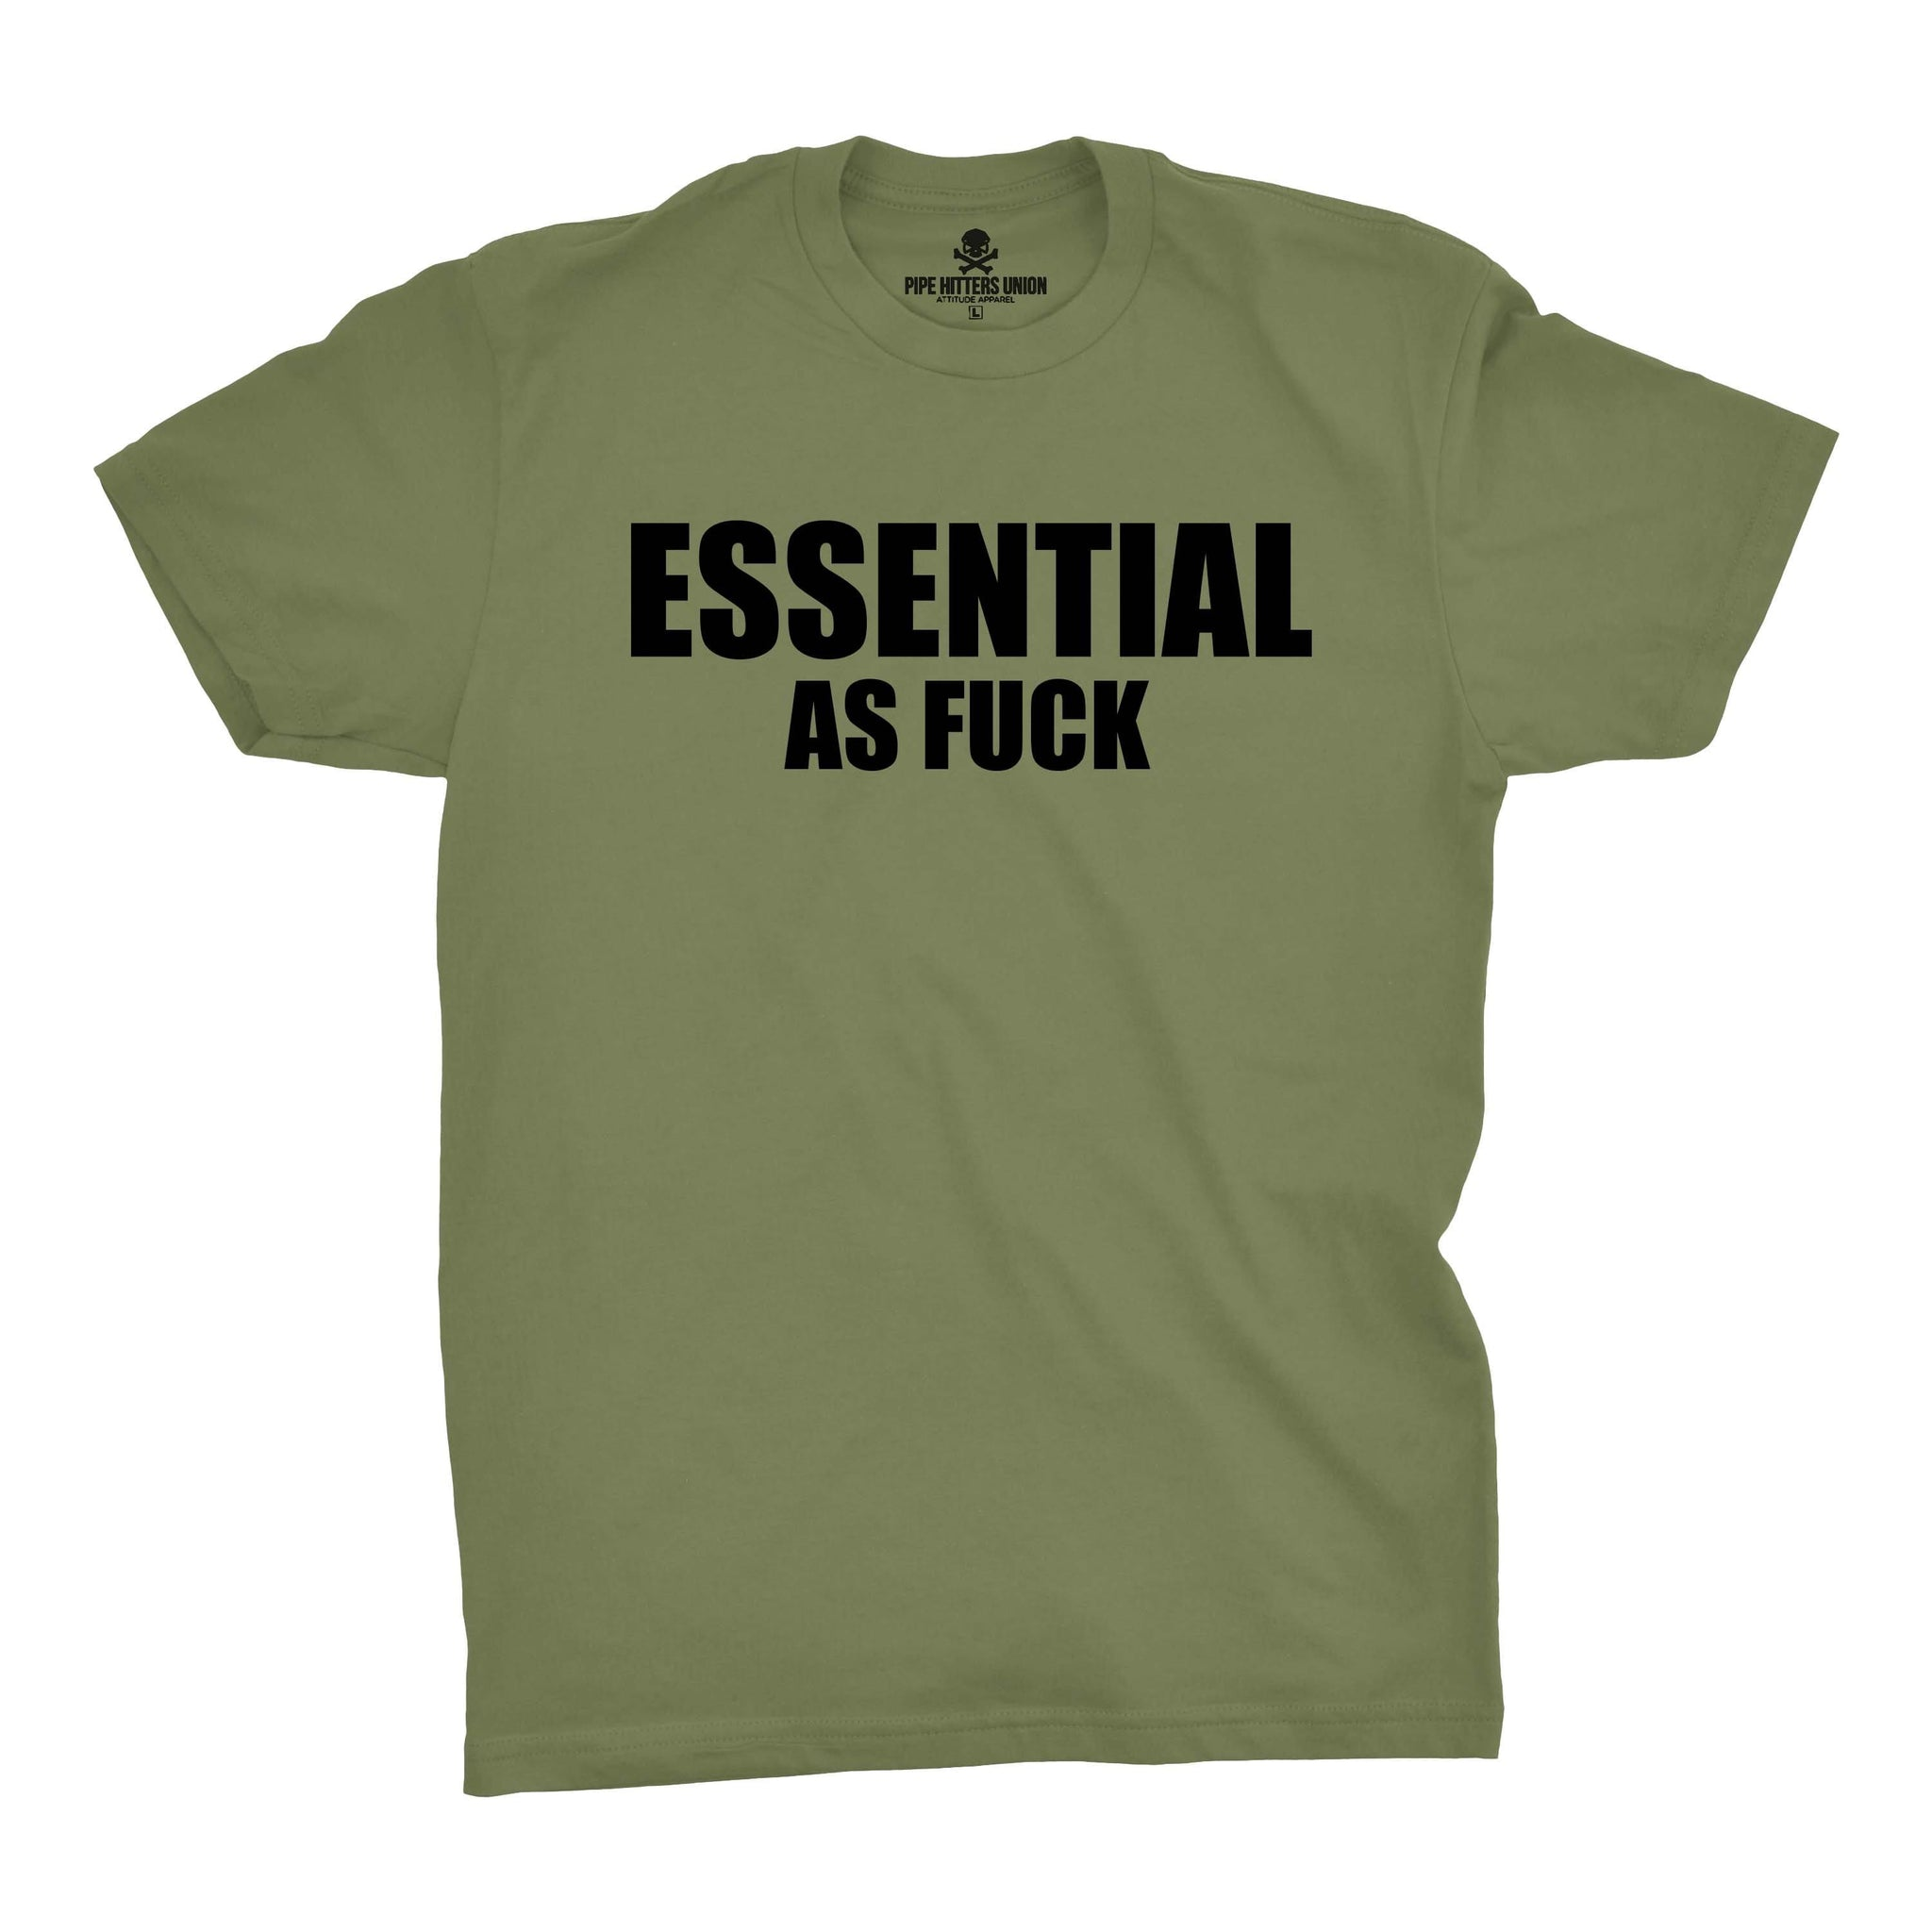 Essential As Fuck - Military Green - T-Shirts - Pipe Hitters Union